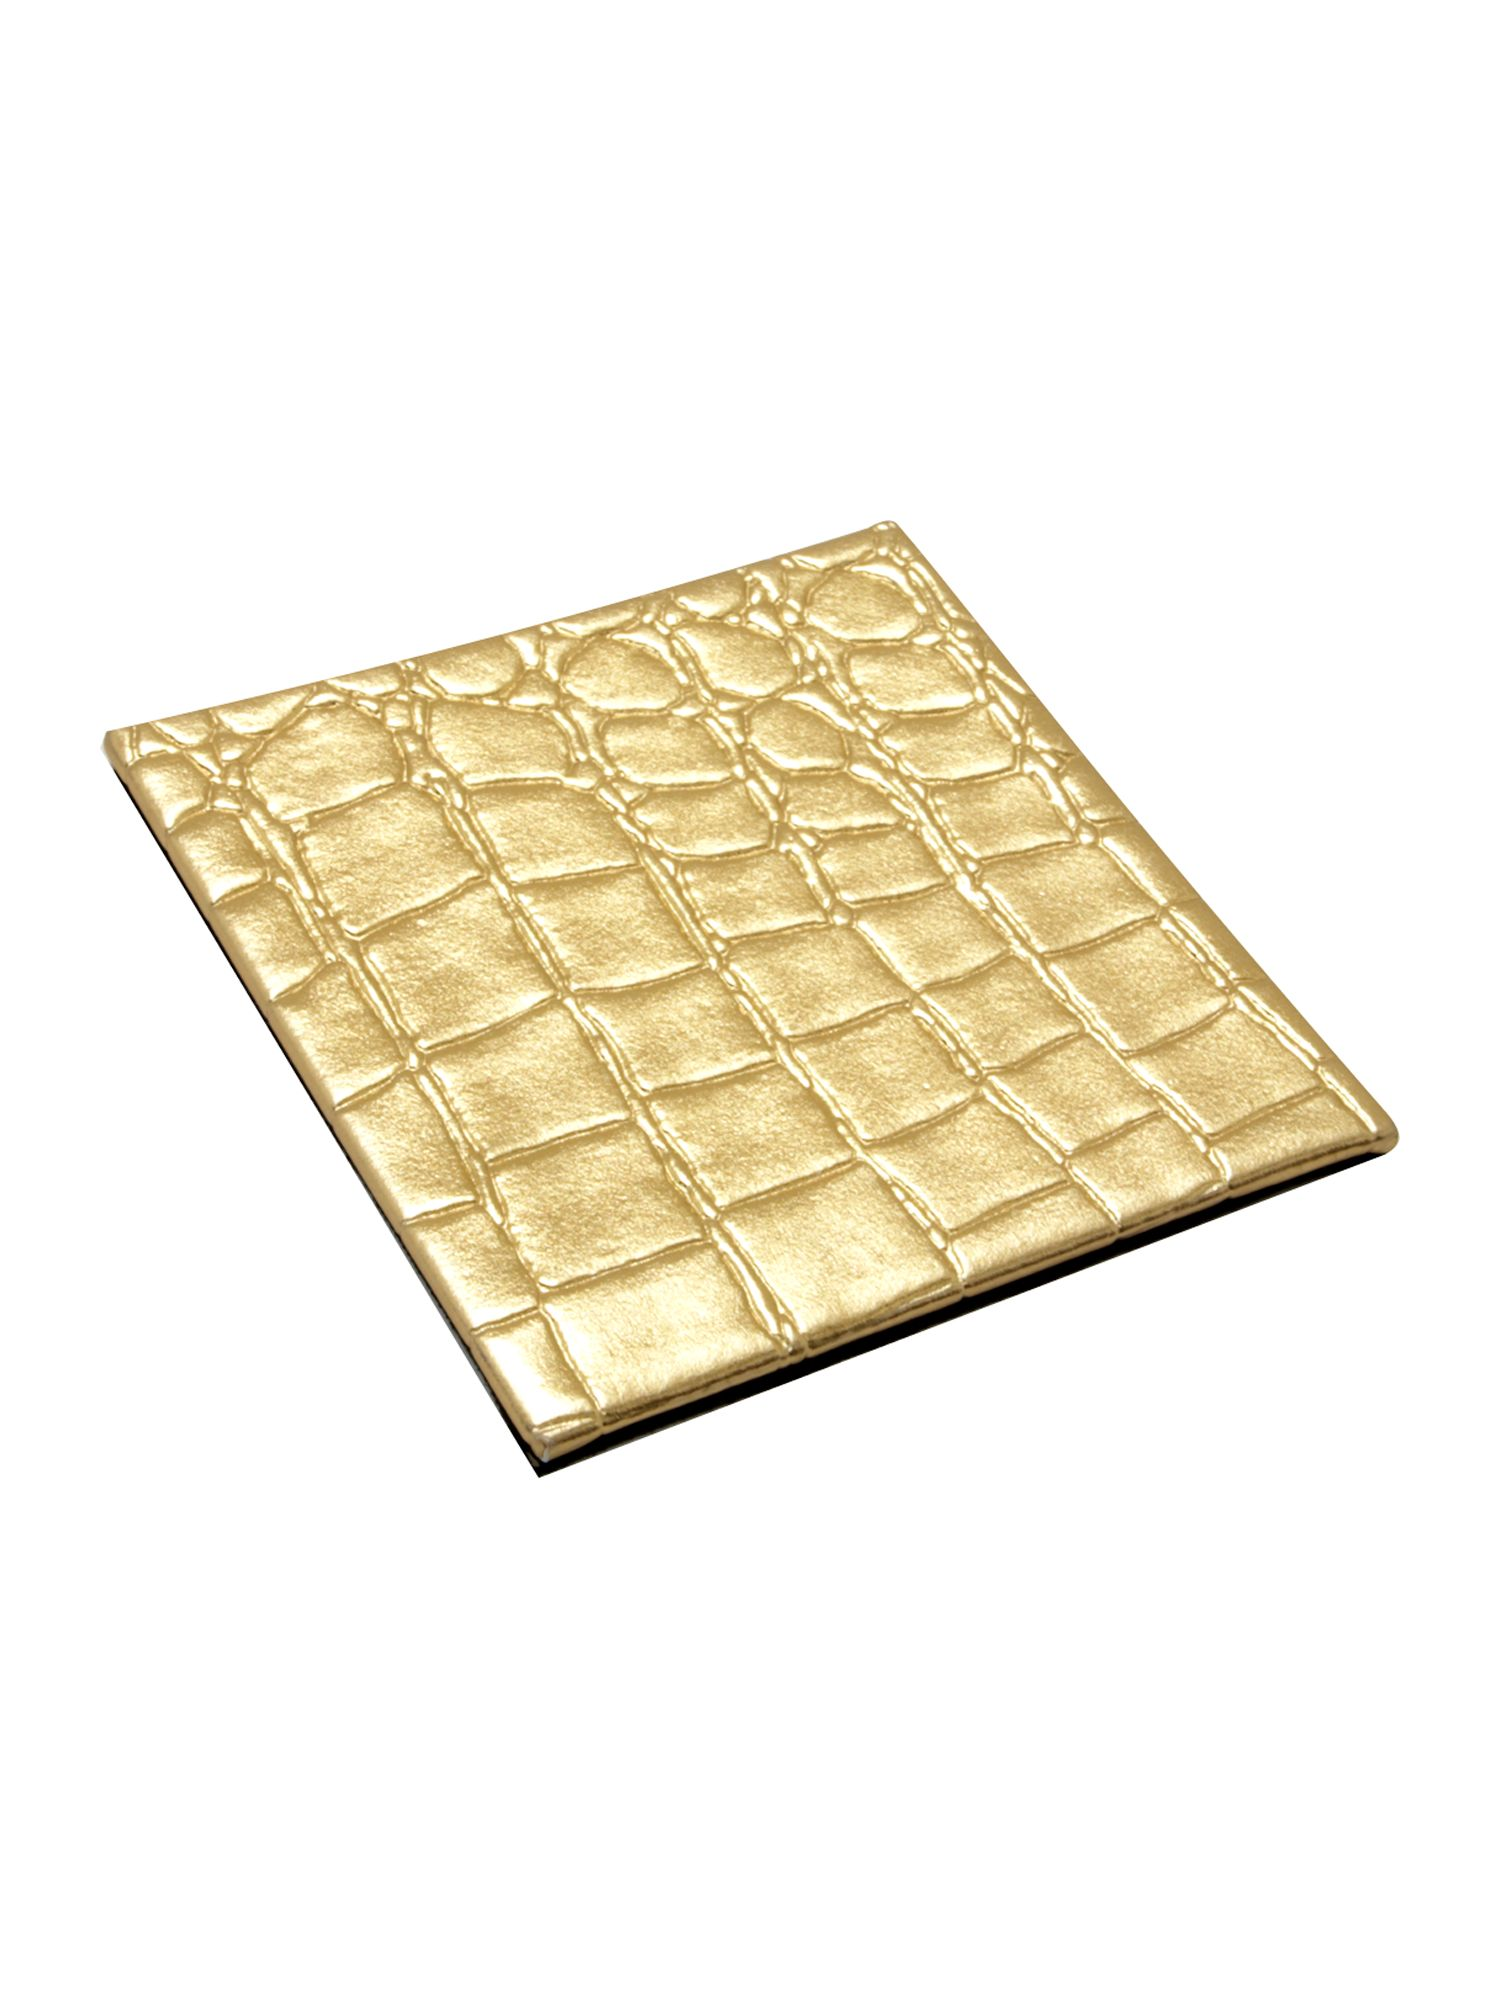 Gold mock croc set of 4 coasters